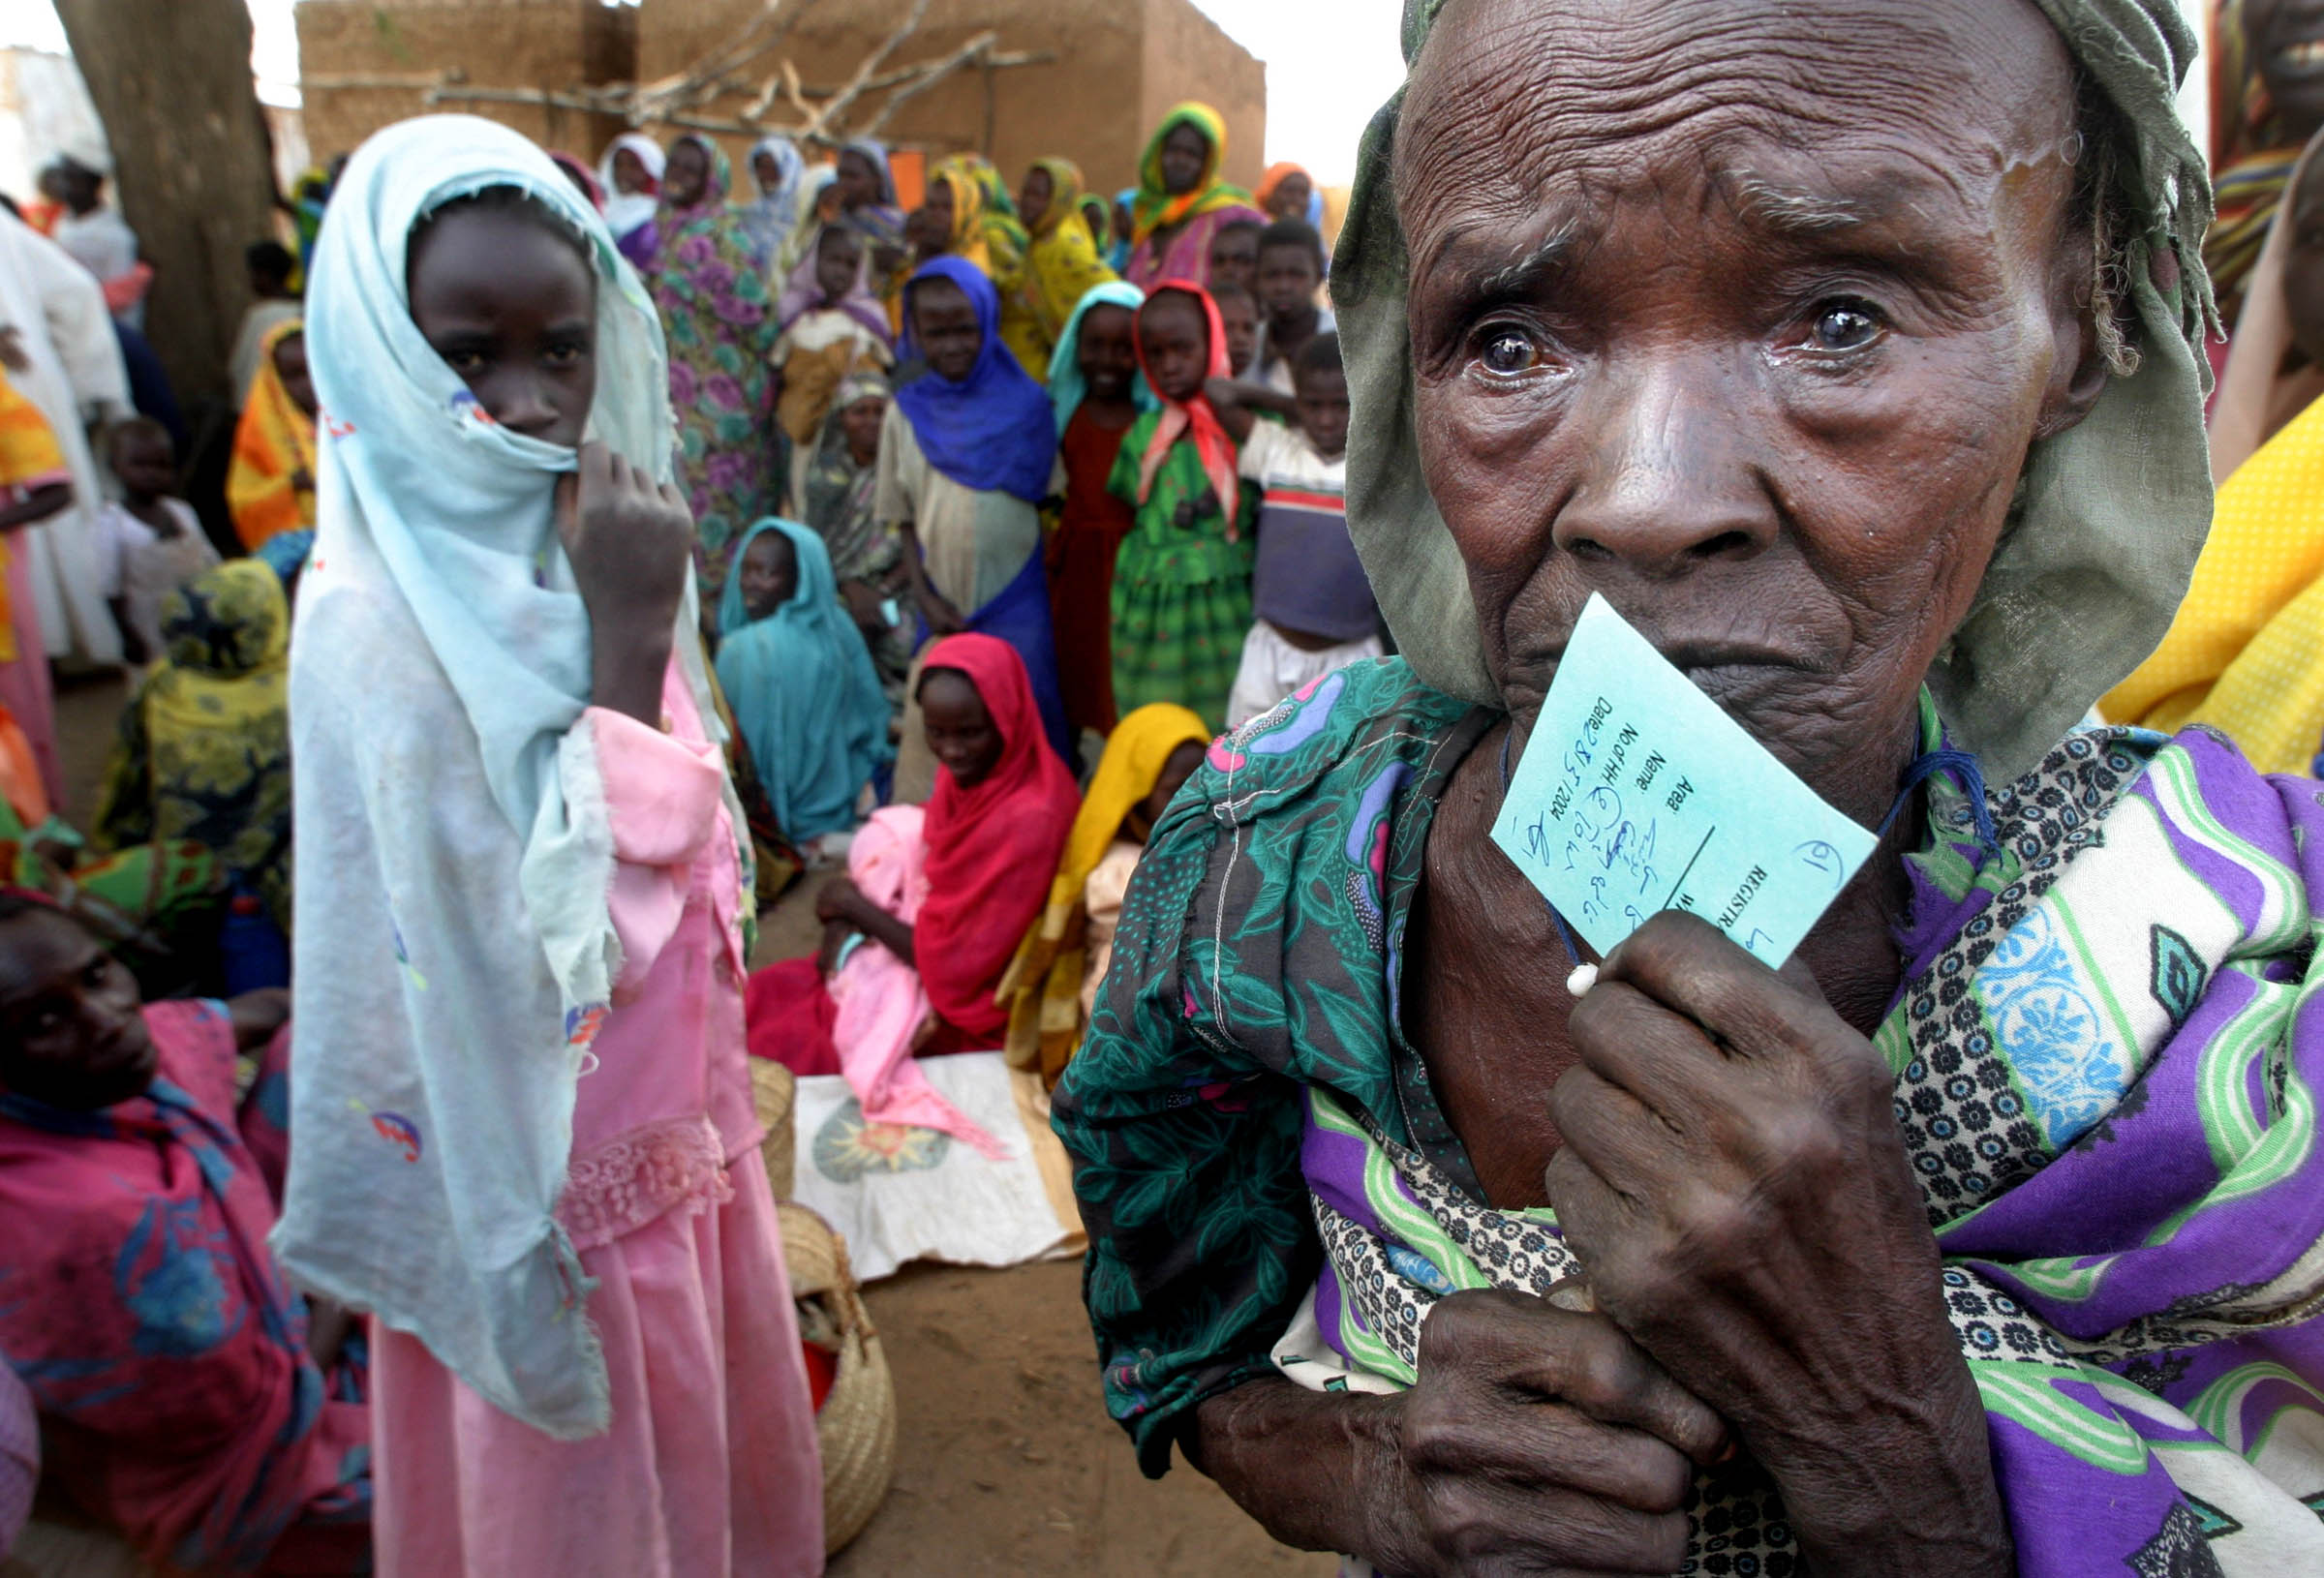 An elderly displaced woman holds her ration card as she waits to receive food in Niyama, Darfur.